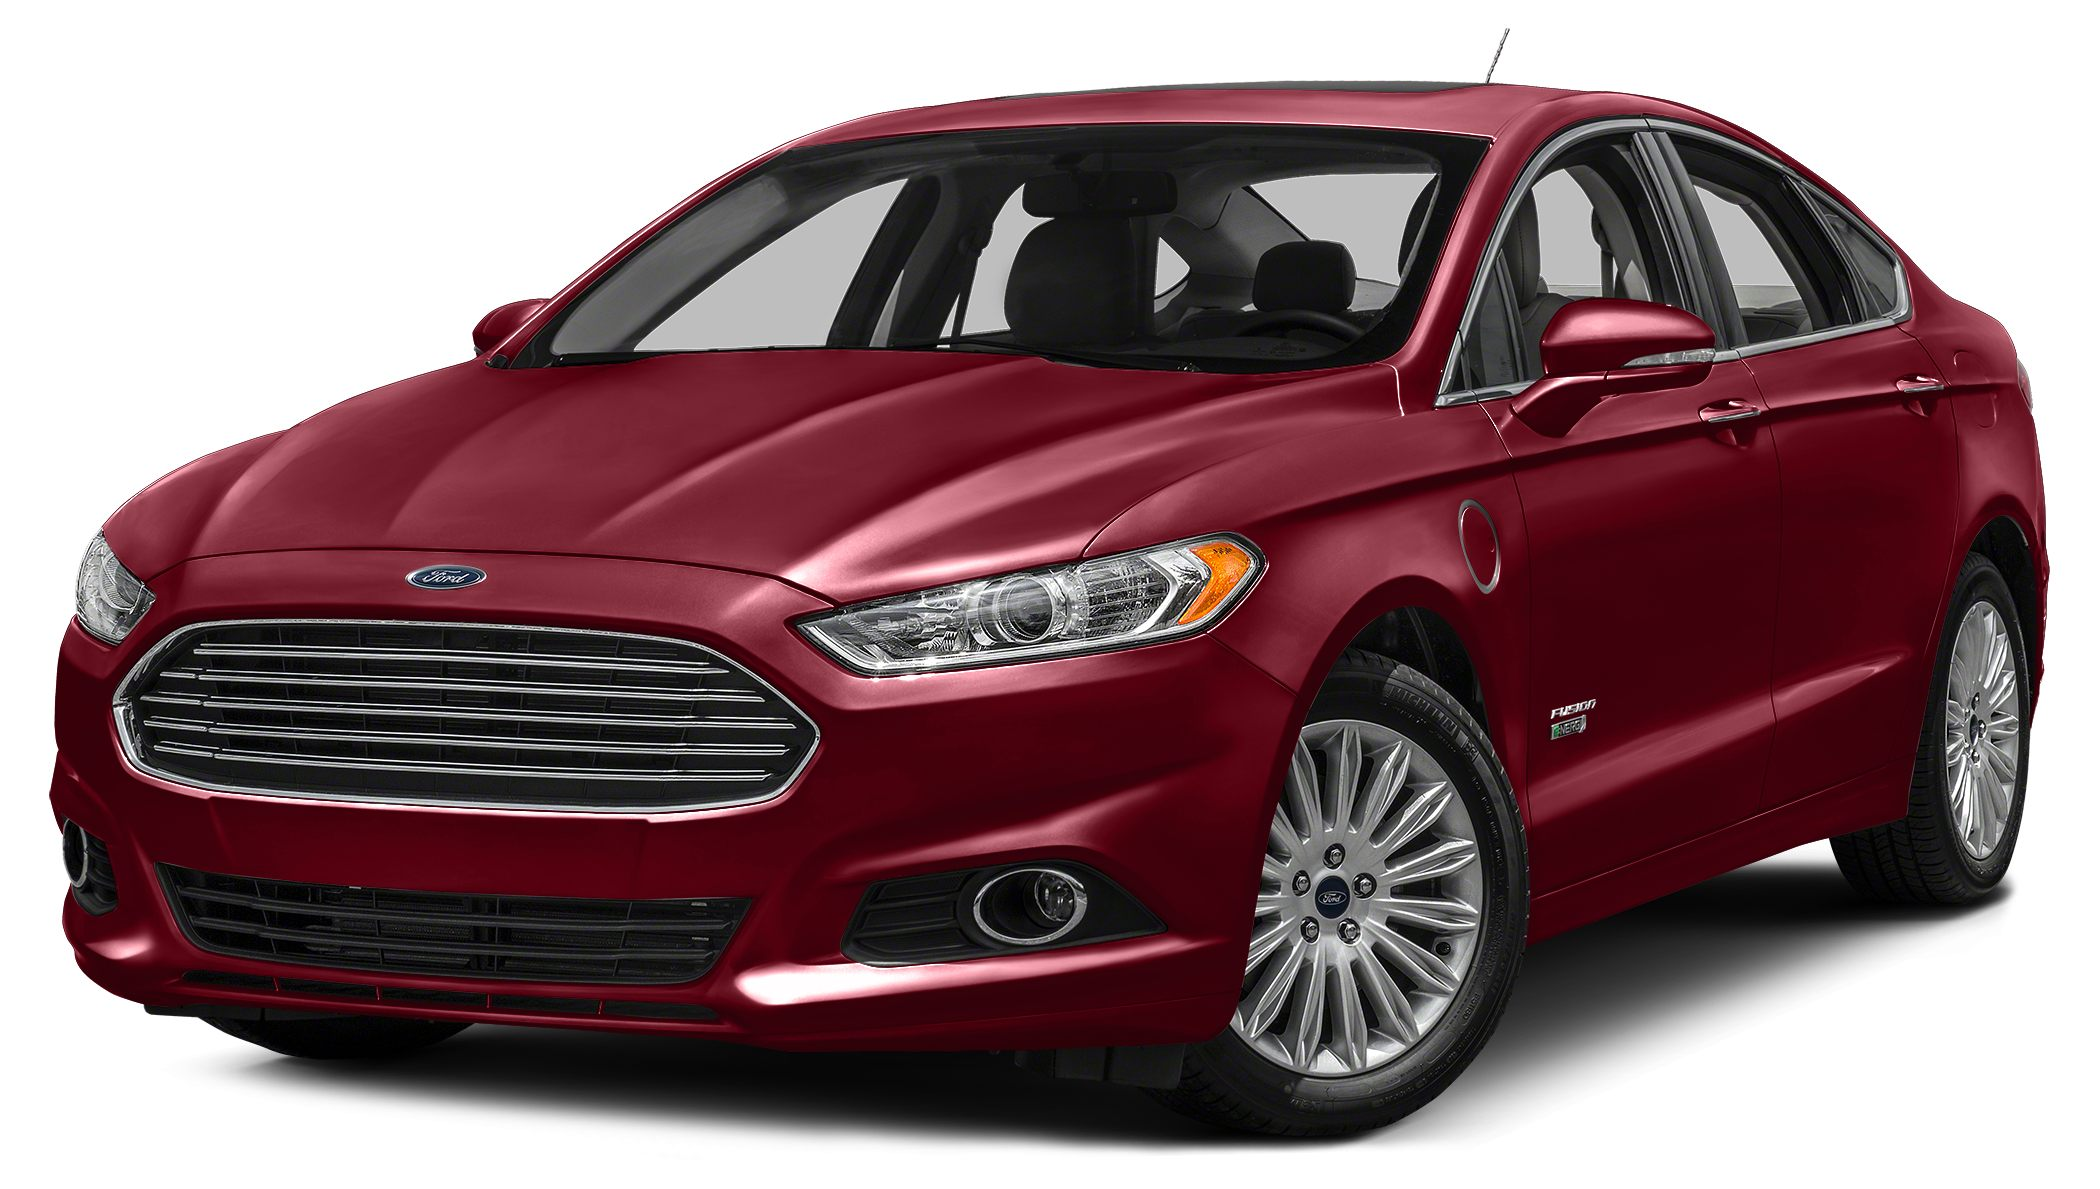 2016 Ford Fusion Energi Titanium The 2016 Ford Fusion Energi models have an upscale style and fron